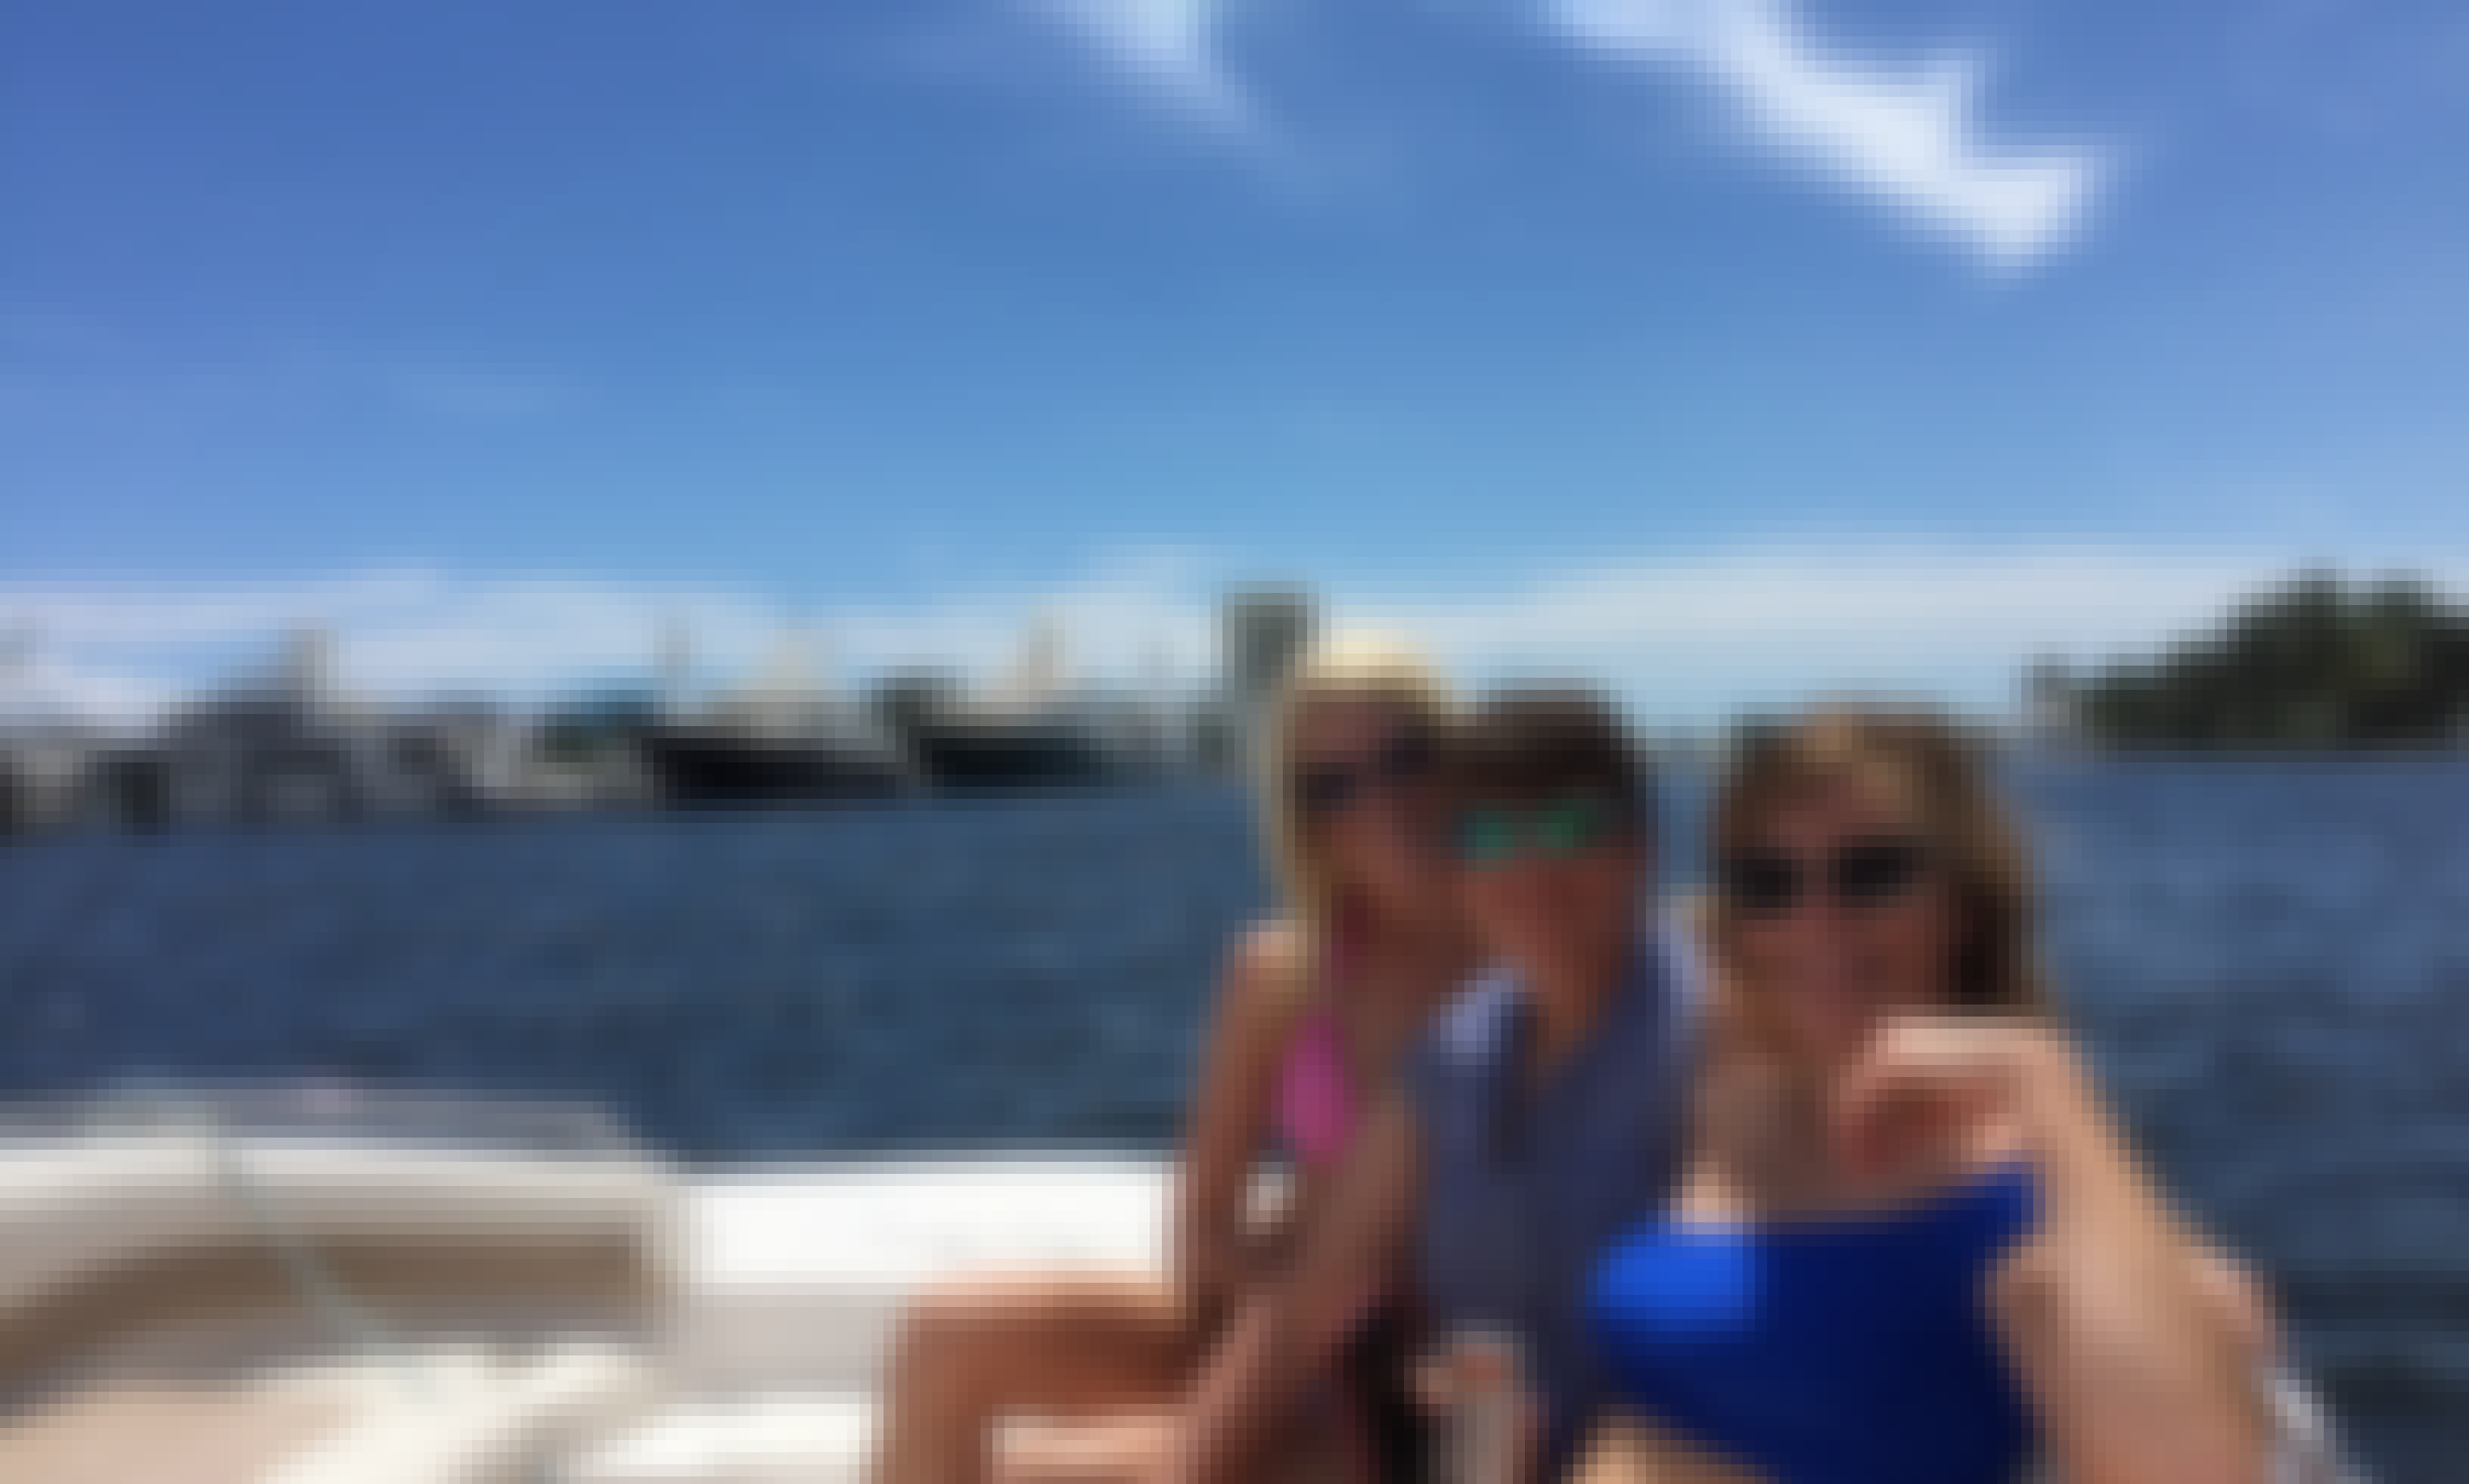 21 foot Deck Boat rental in Fort Lauderdale for up to 6 guests